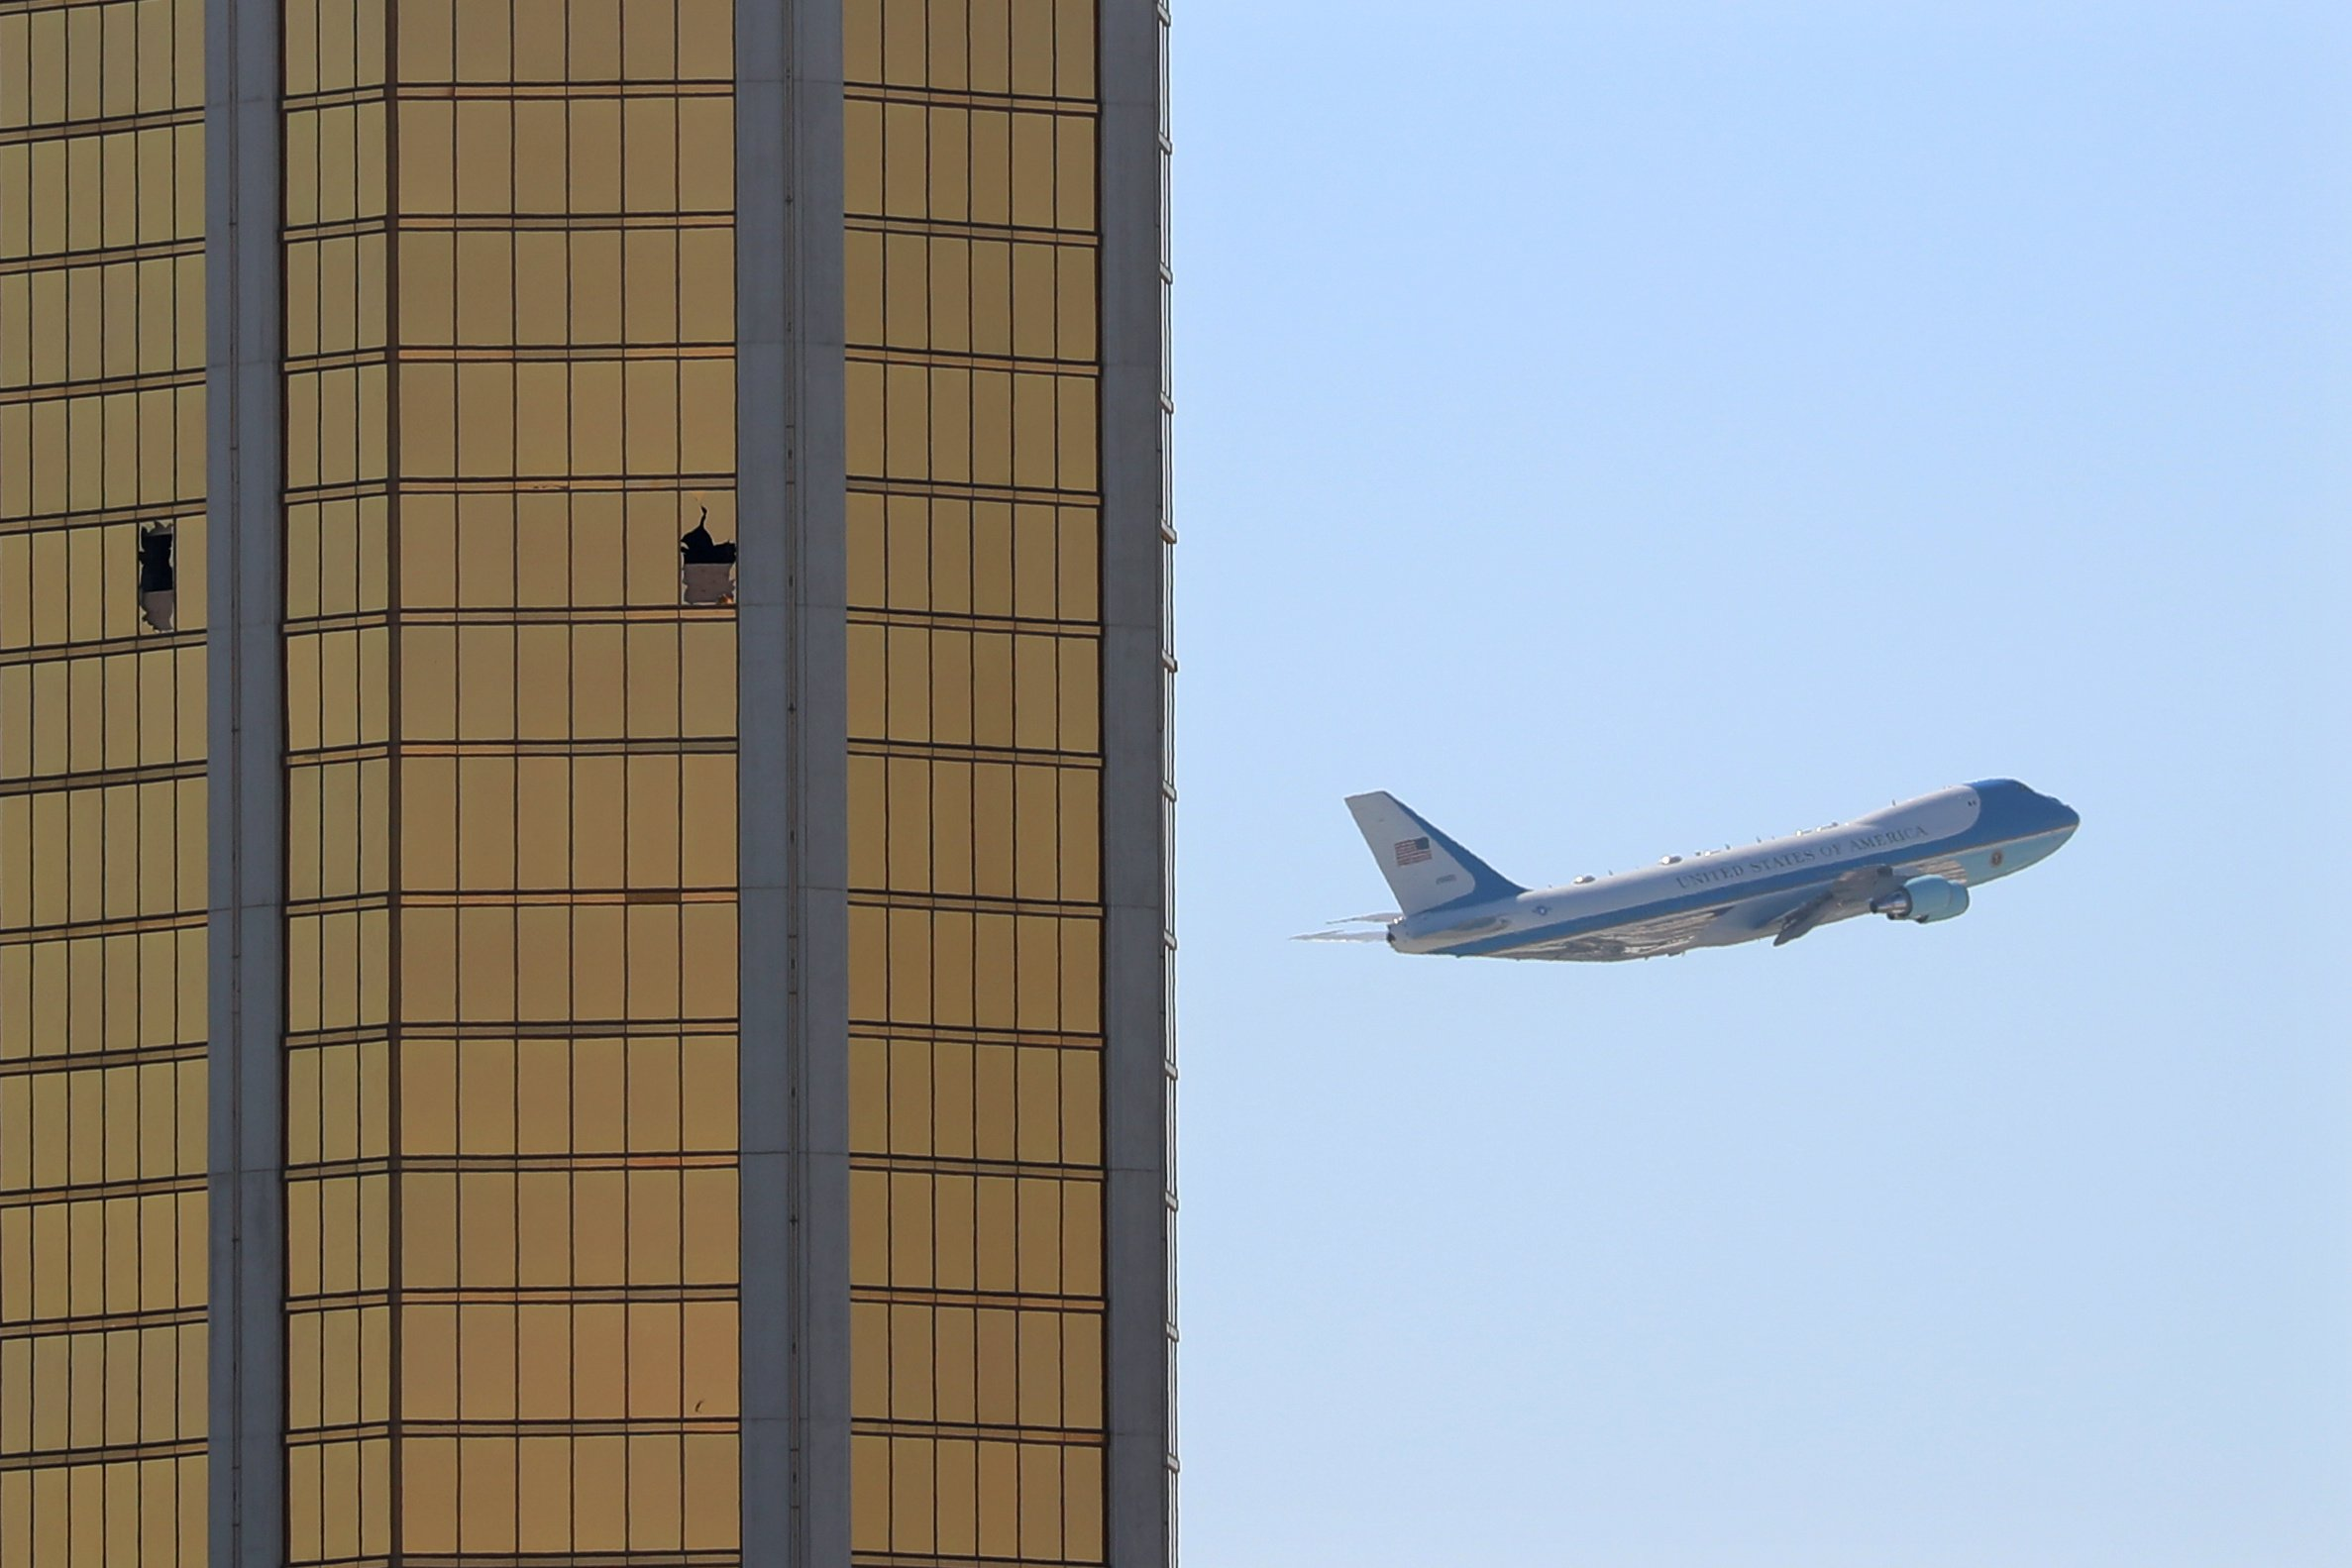 Air Force One departs Las Vegas on Wednesday, flying past the broken windows on the Mandalay Bay Resort and Casino. (Mike Blake/Reuters)